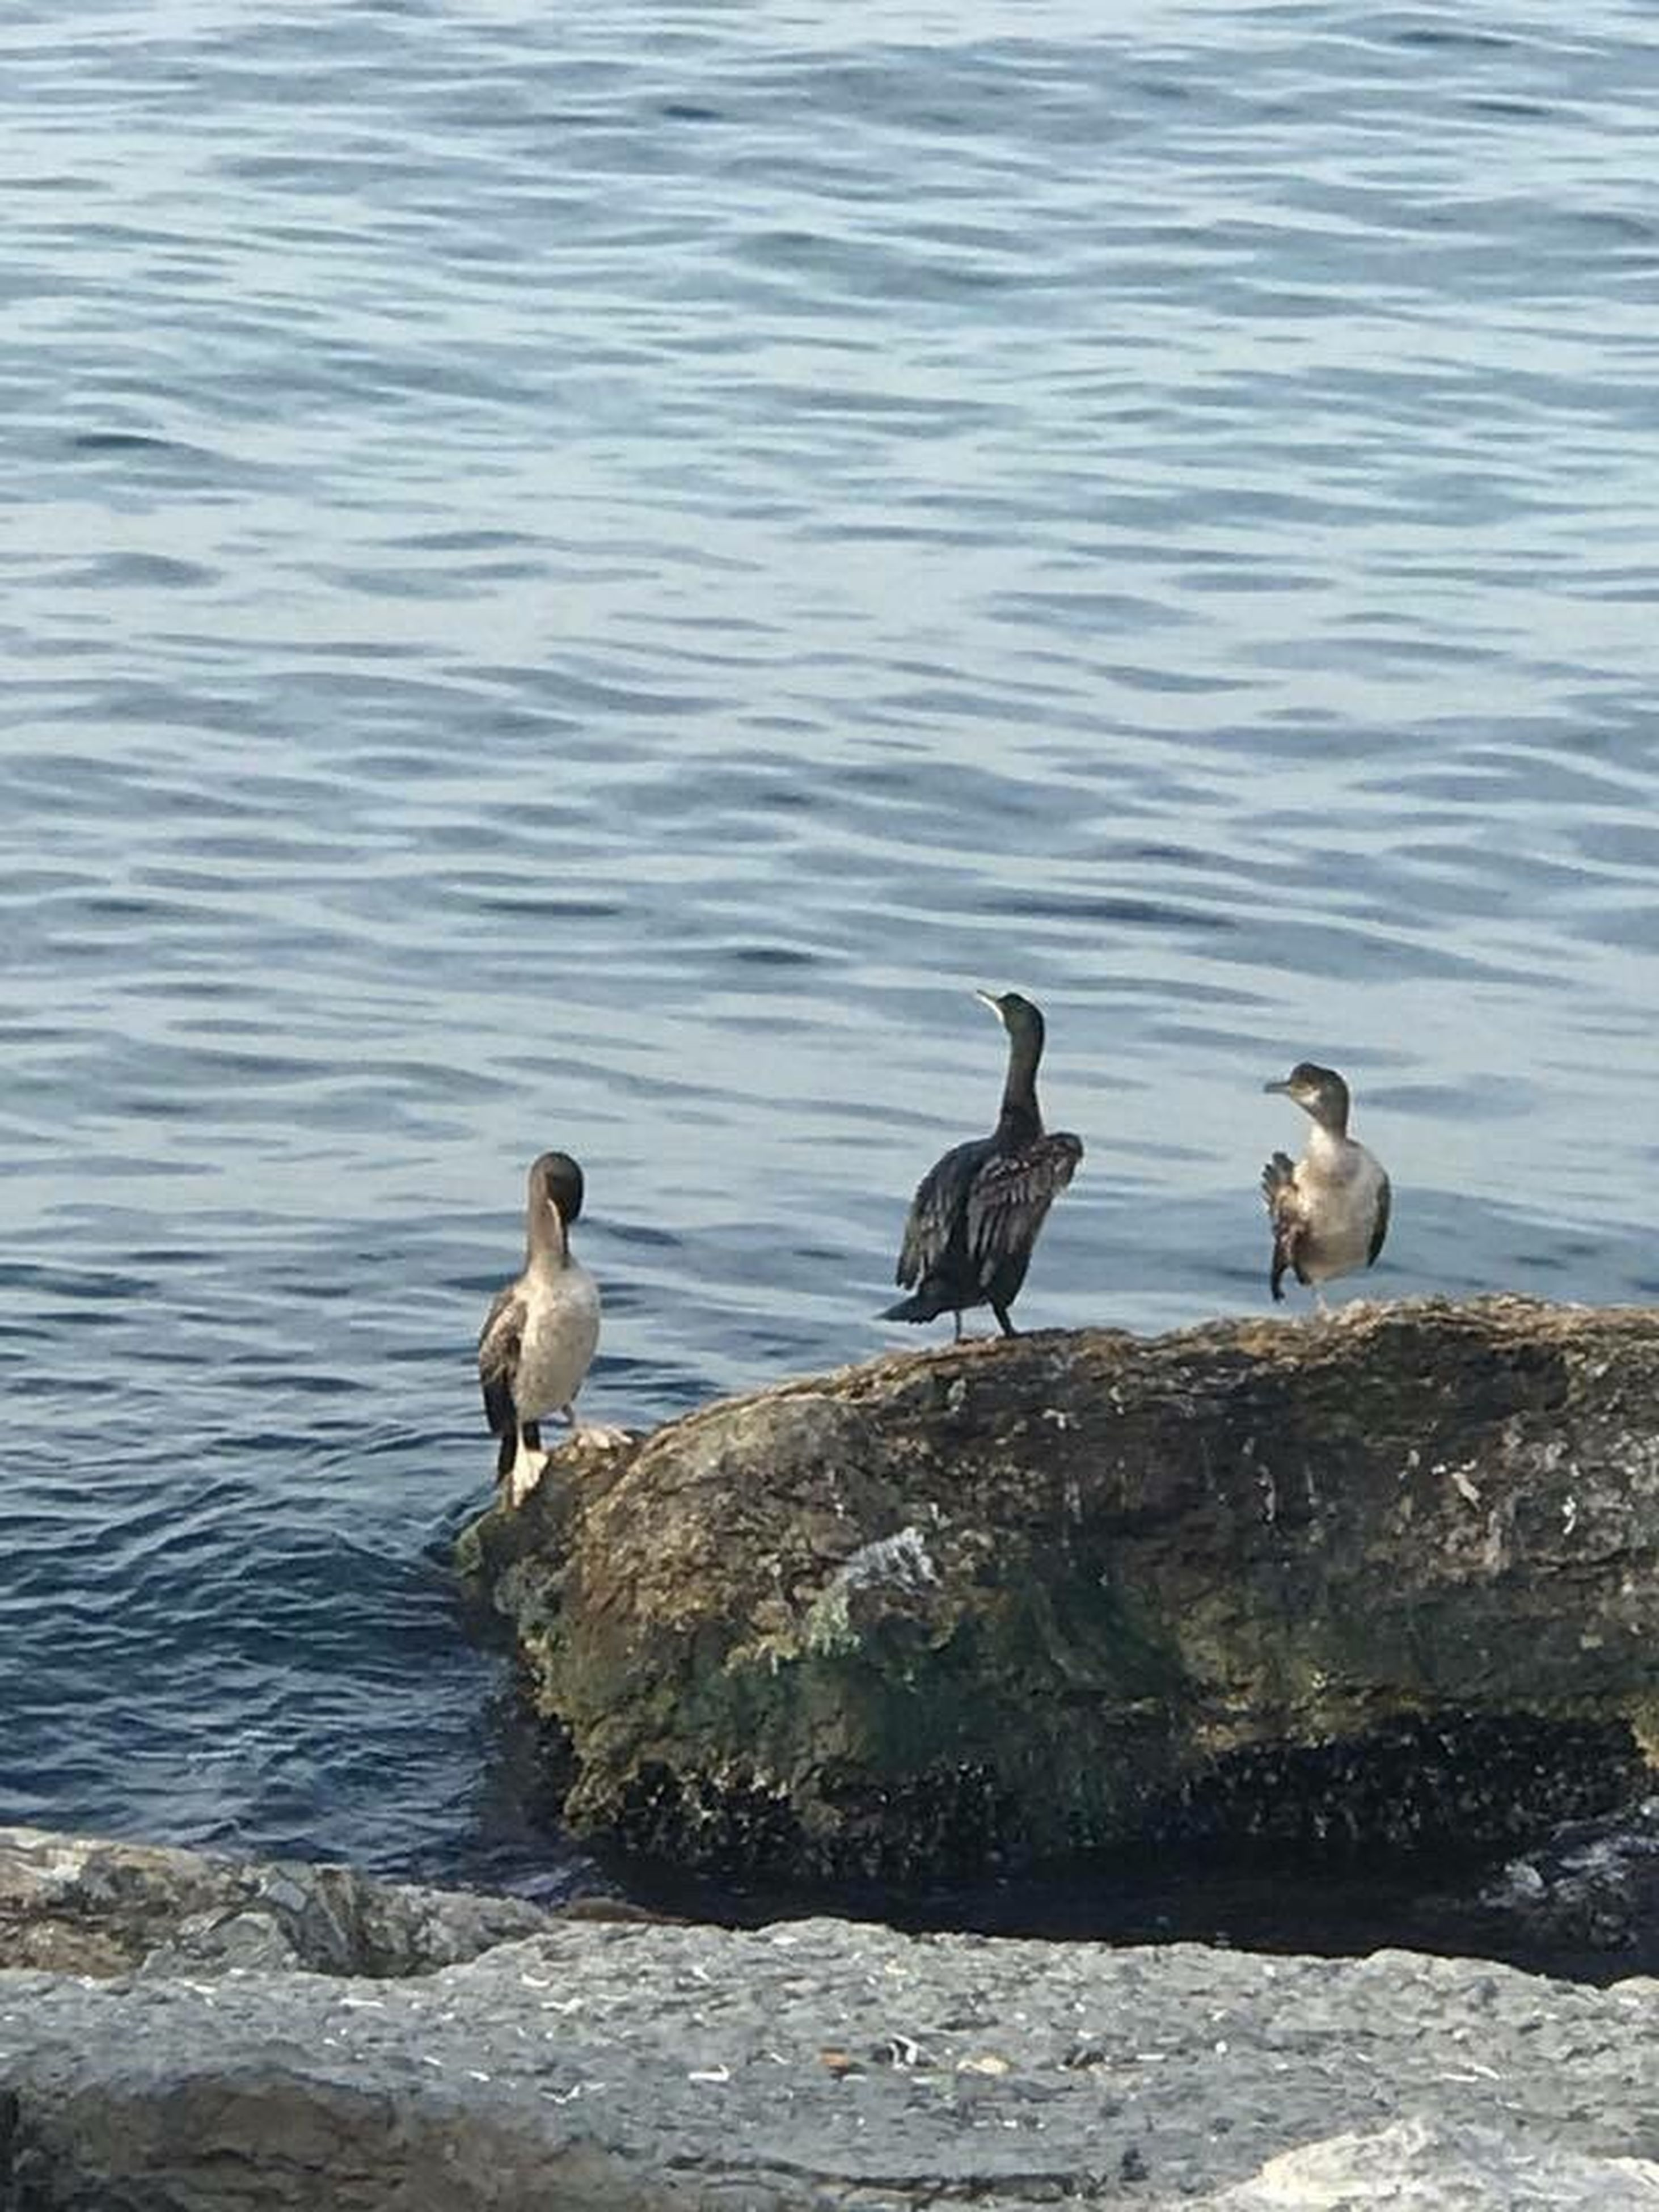 bird, animals in the wild, animal wildlife, animal themes, no people, water, outdoors, day